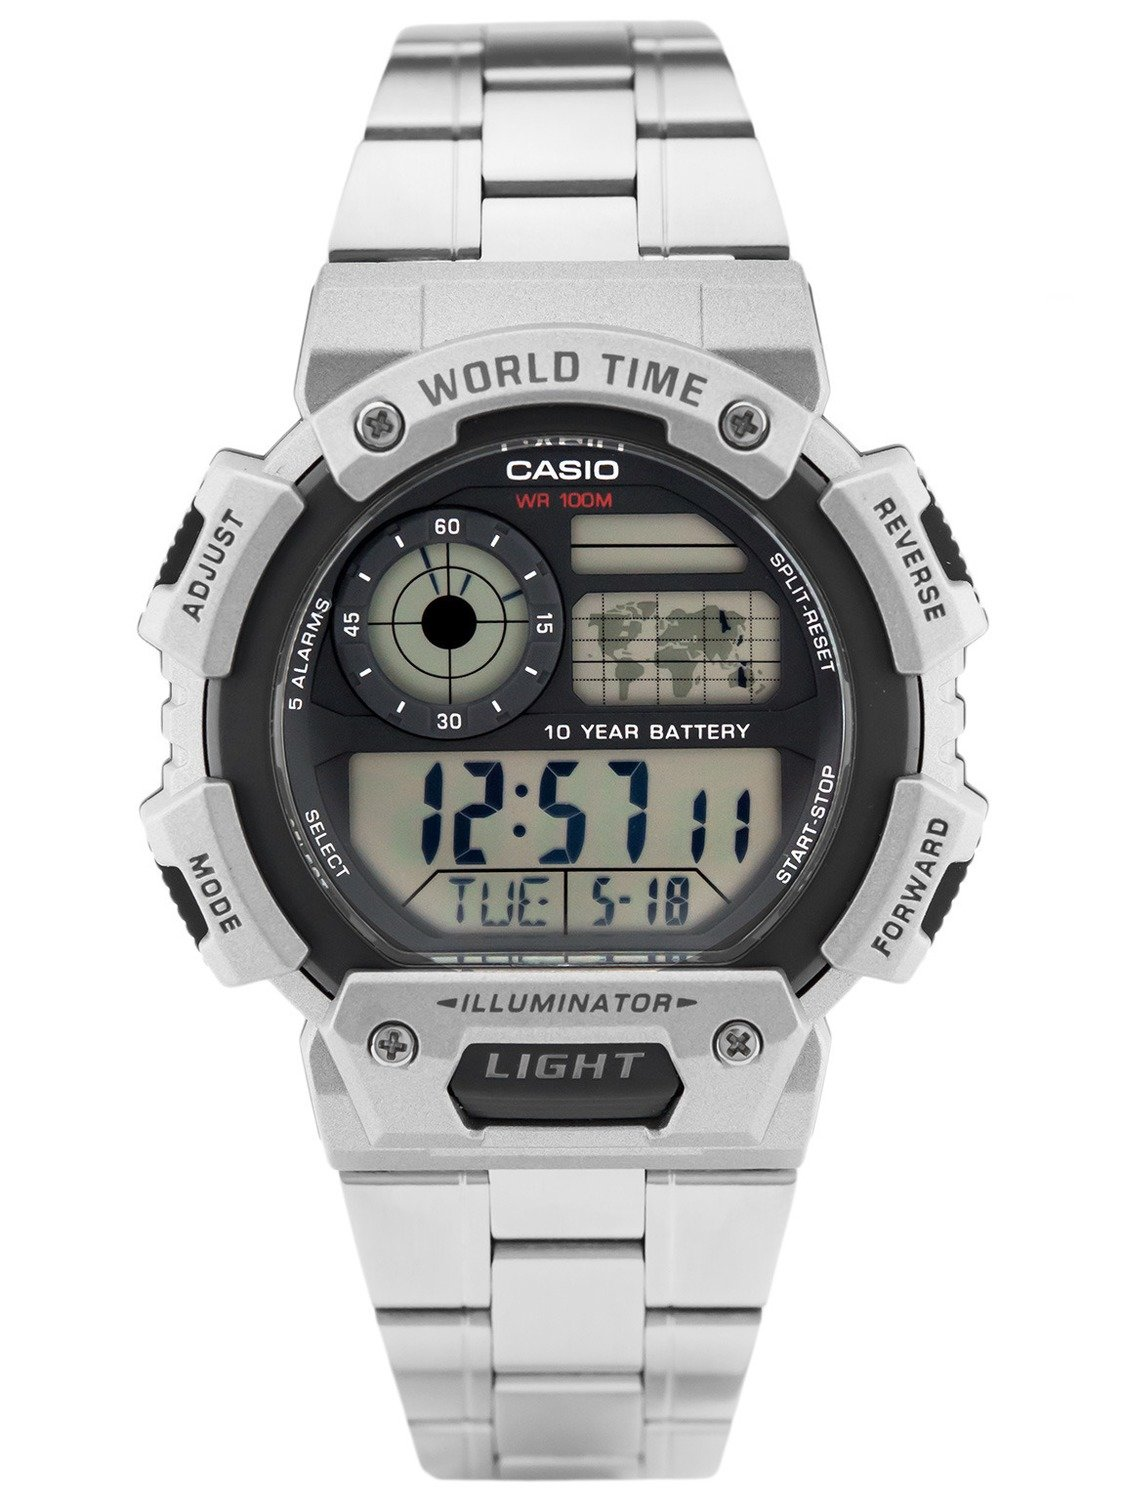 Reloj CASIO QUARTZ ALARMS WATCH AE-1400WHD-1AV